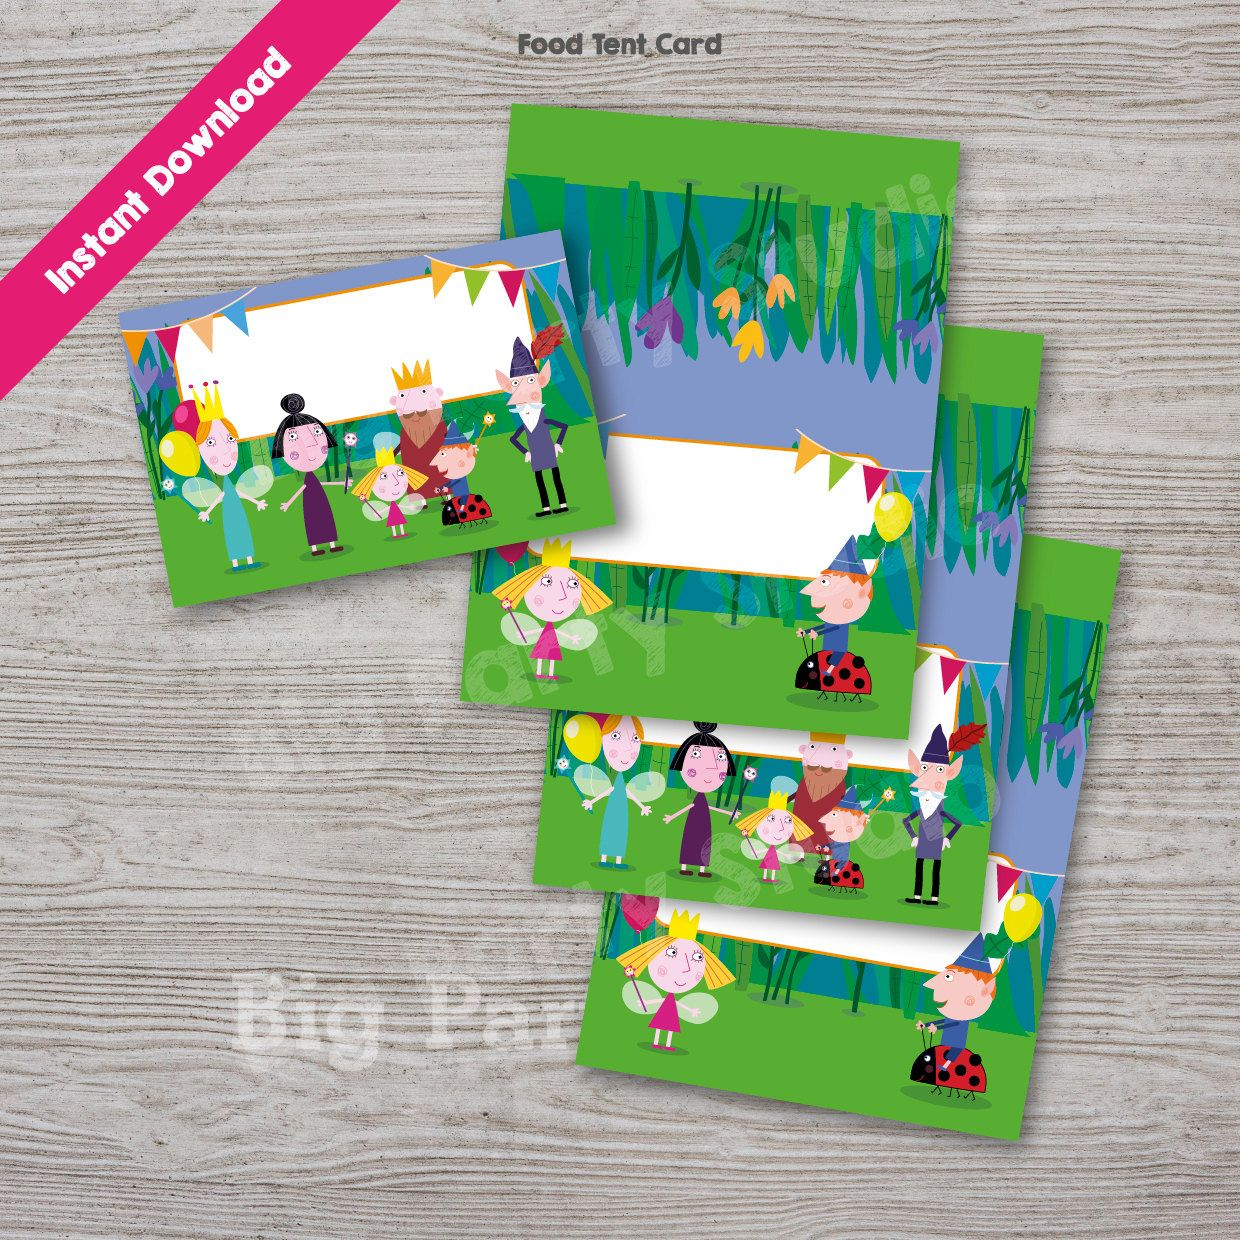 Ben and Holly Food Labels, Ben & Holly Food Tags, Food Tent Card ...